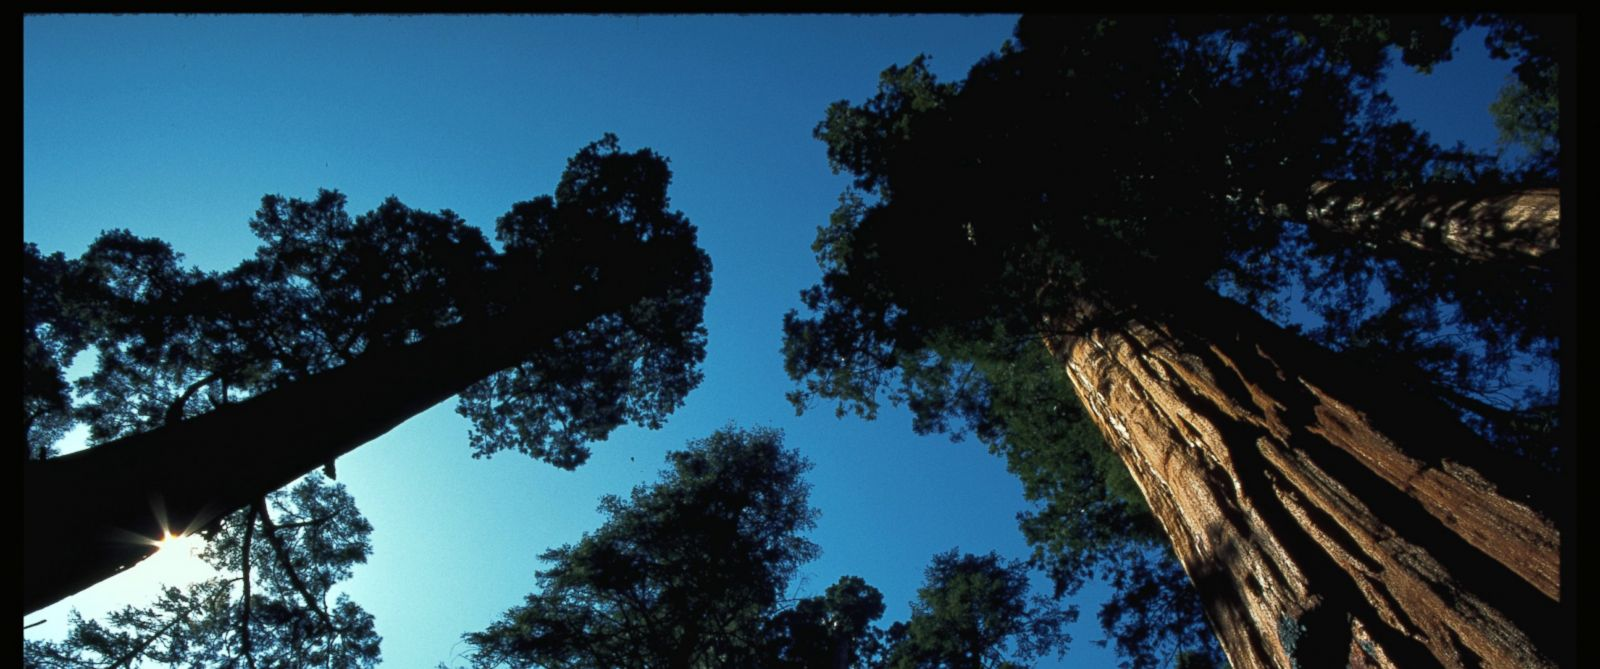 PHOTO: A stand of giant sequoias in Sequoia National Park. (Photo by Phil Schermeister/Corbis/VCG via Getty Images)